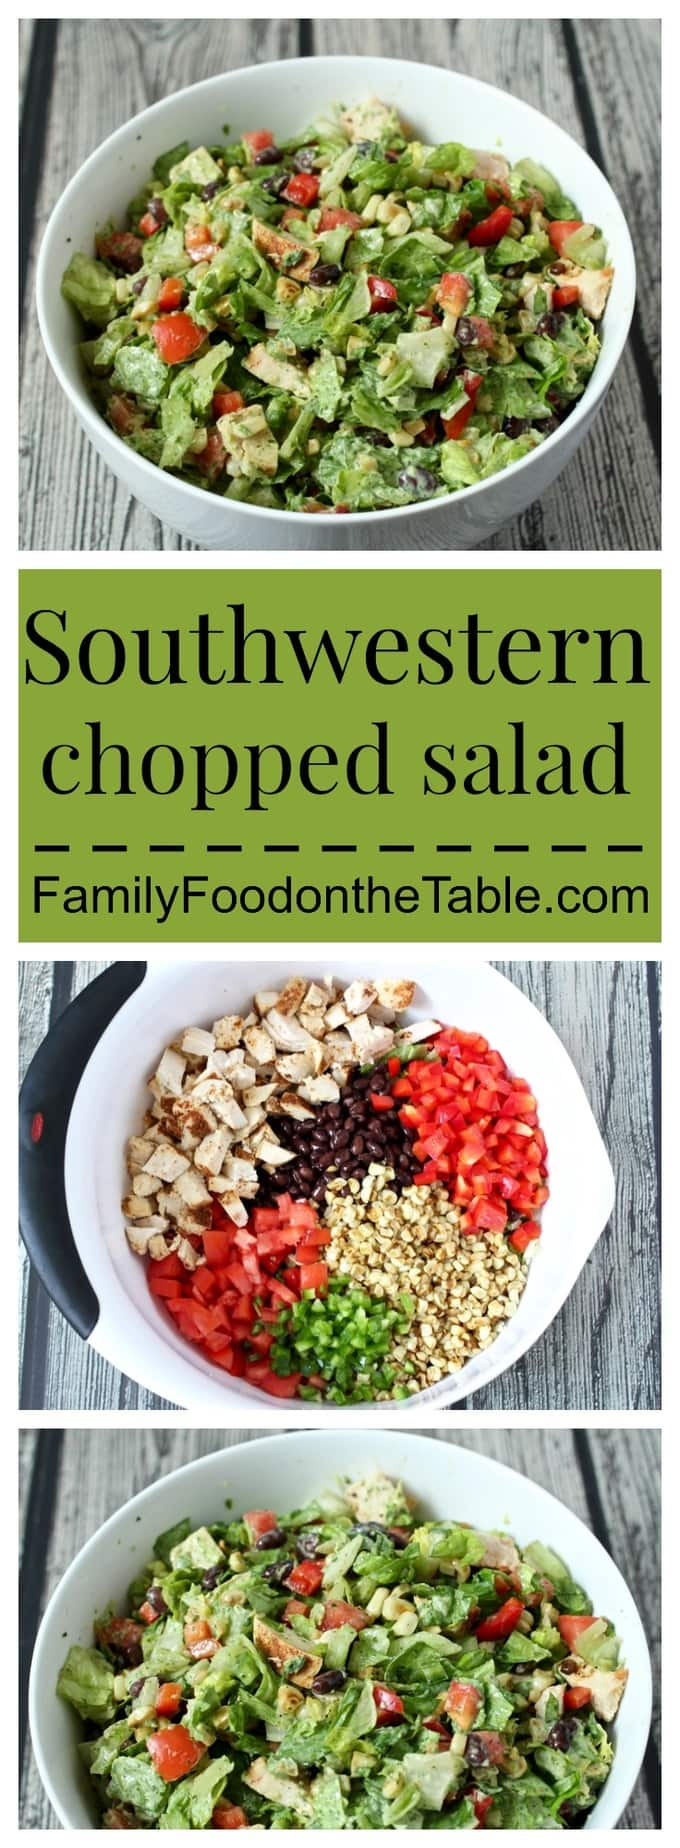 Southwestern chopped salad with grilled chicken, black beans, peppers, tomatoes and corn is fresh, crunchy and full of flavor! Serve with a super simple creamy cilantro lime dressing for a healthy lunch or light dinner! #choppedsalad #saladrecipe #chickensalad | www.familyfoodonthetable.com